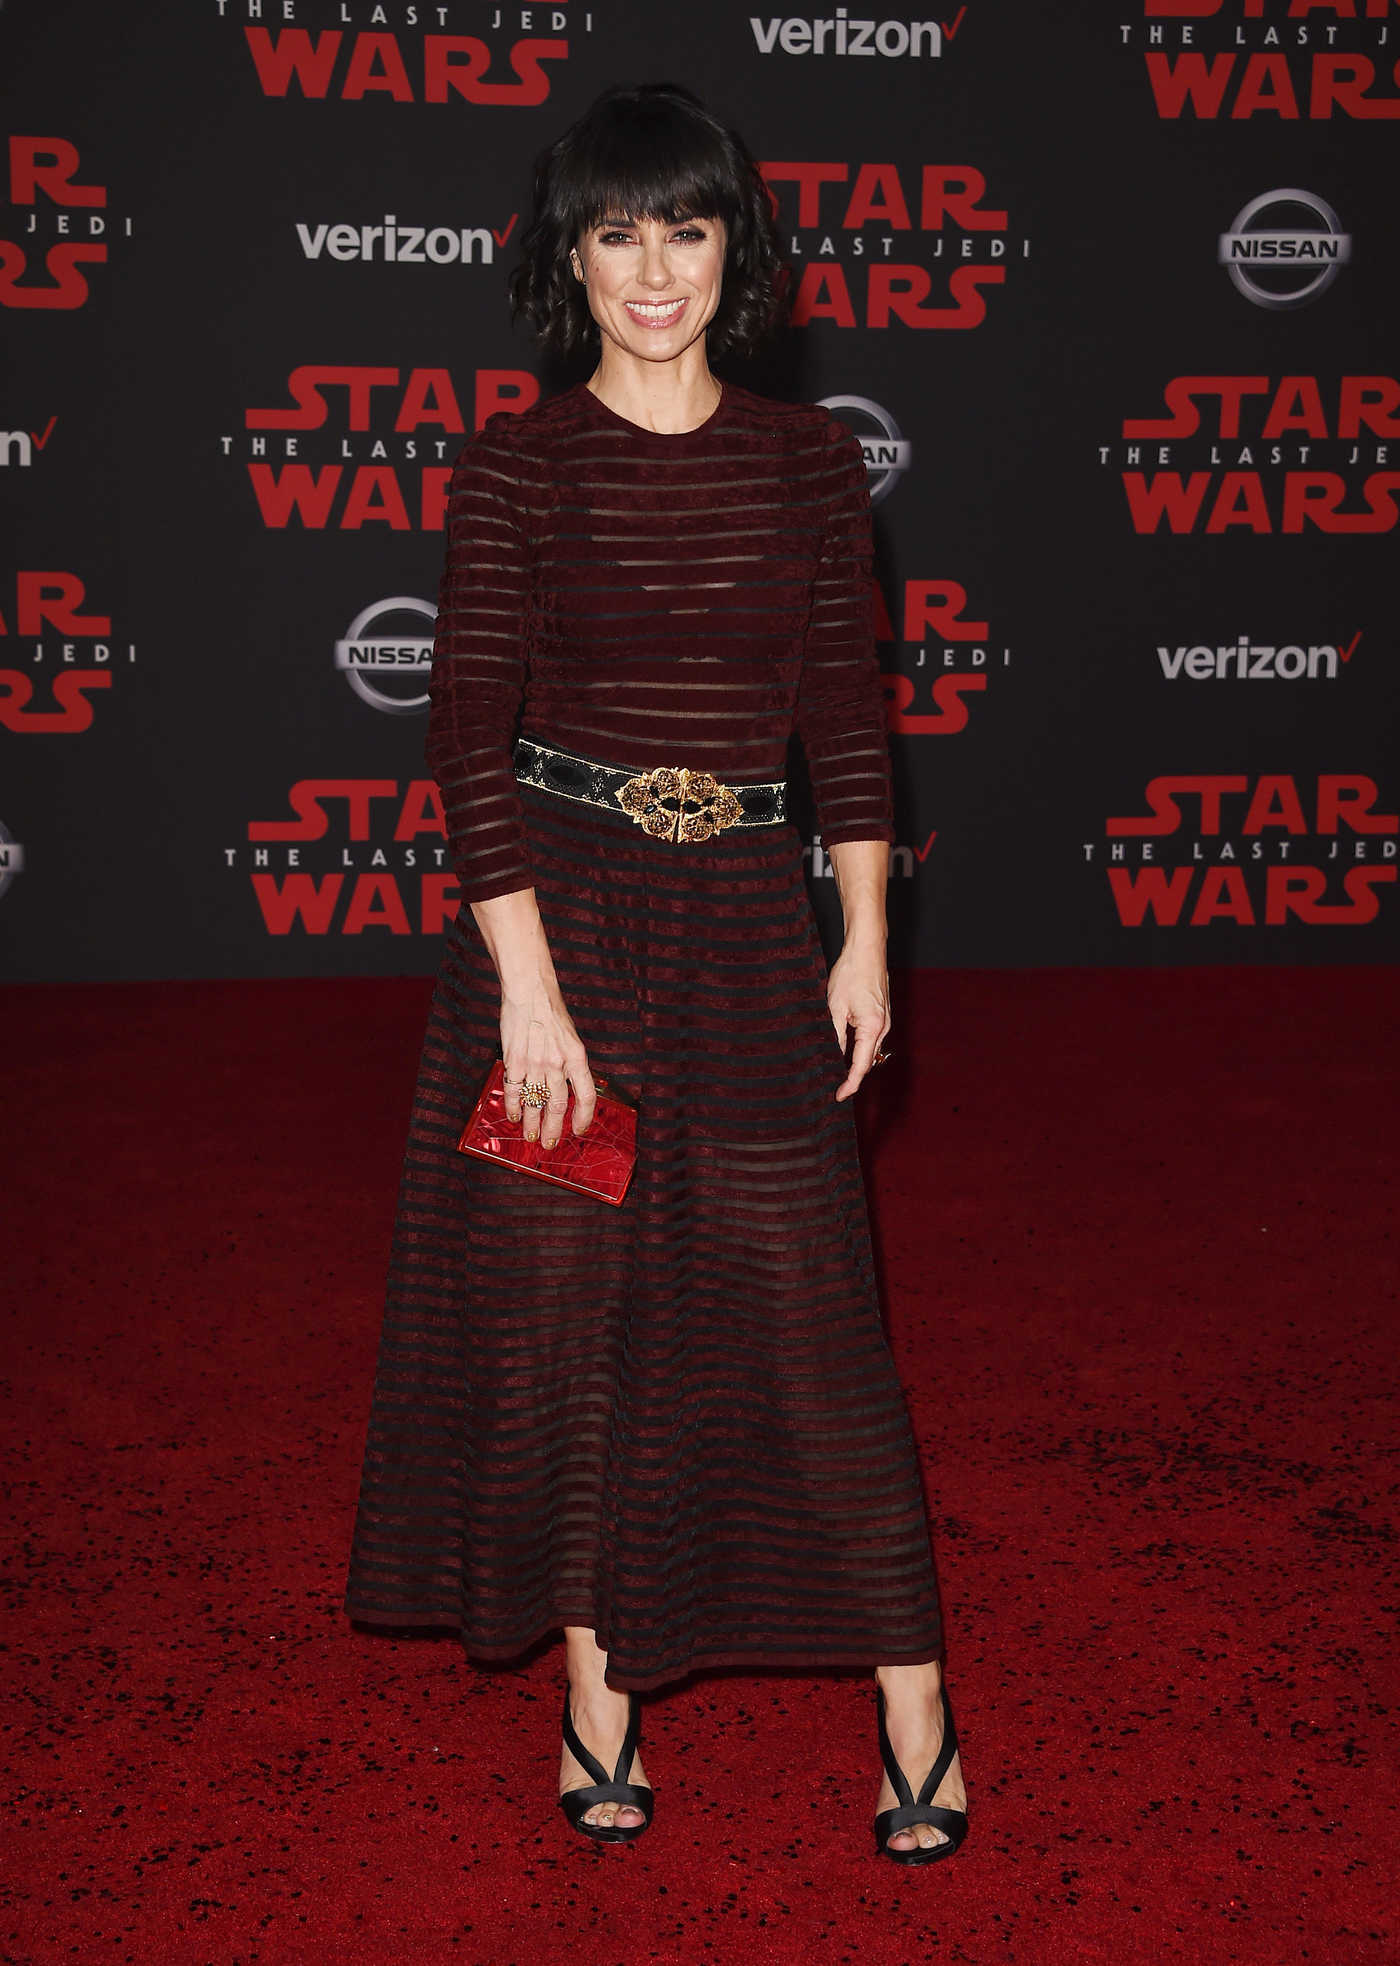 Constance Zimmer at the Star Wars: The Last Jedi Premiere in Los Angeles 12/09/2017